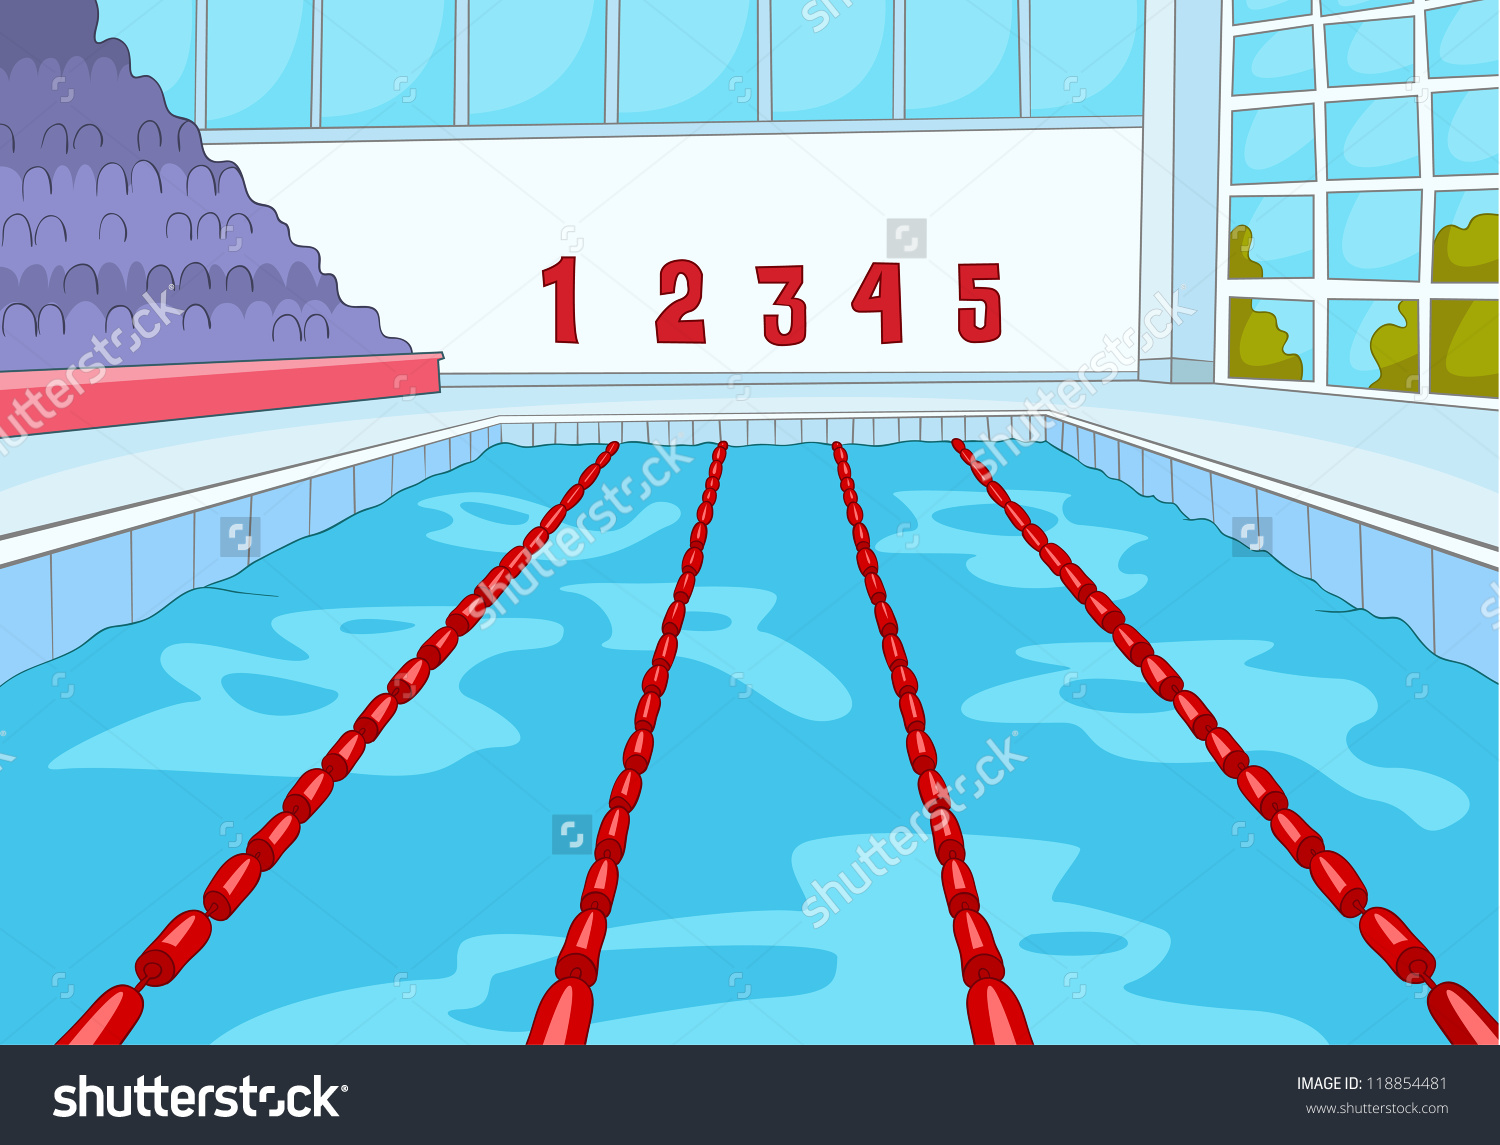 olympic swimming pool lanes. Olympic Swimming Pool Lanes